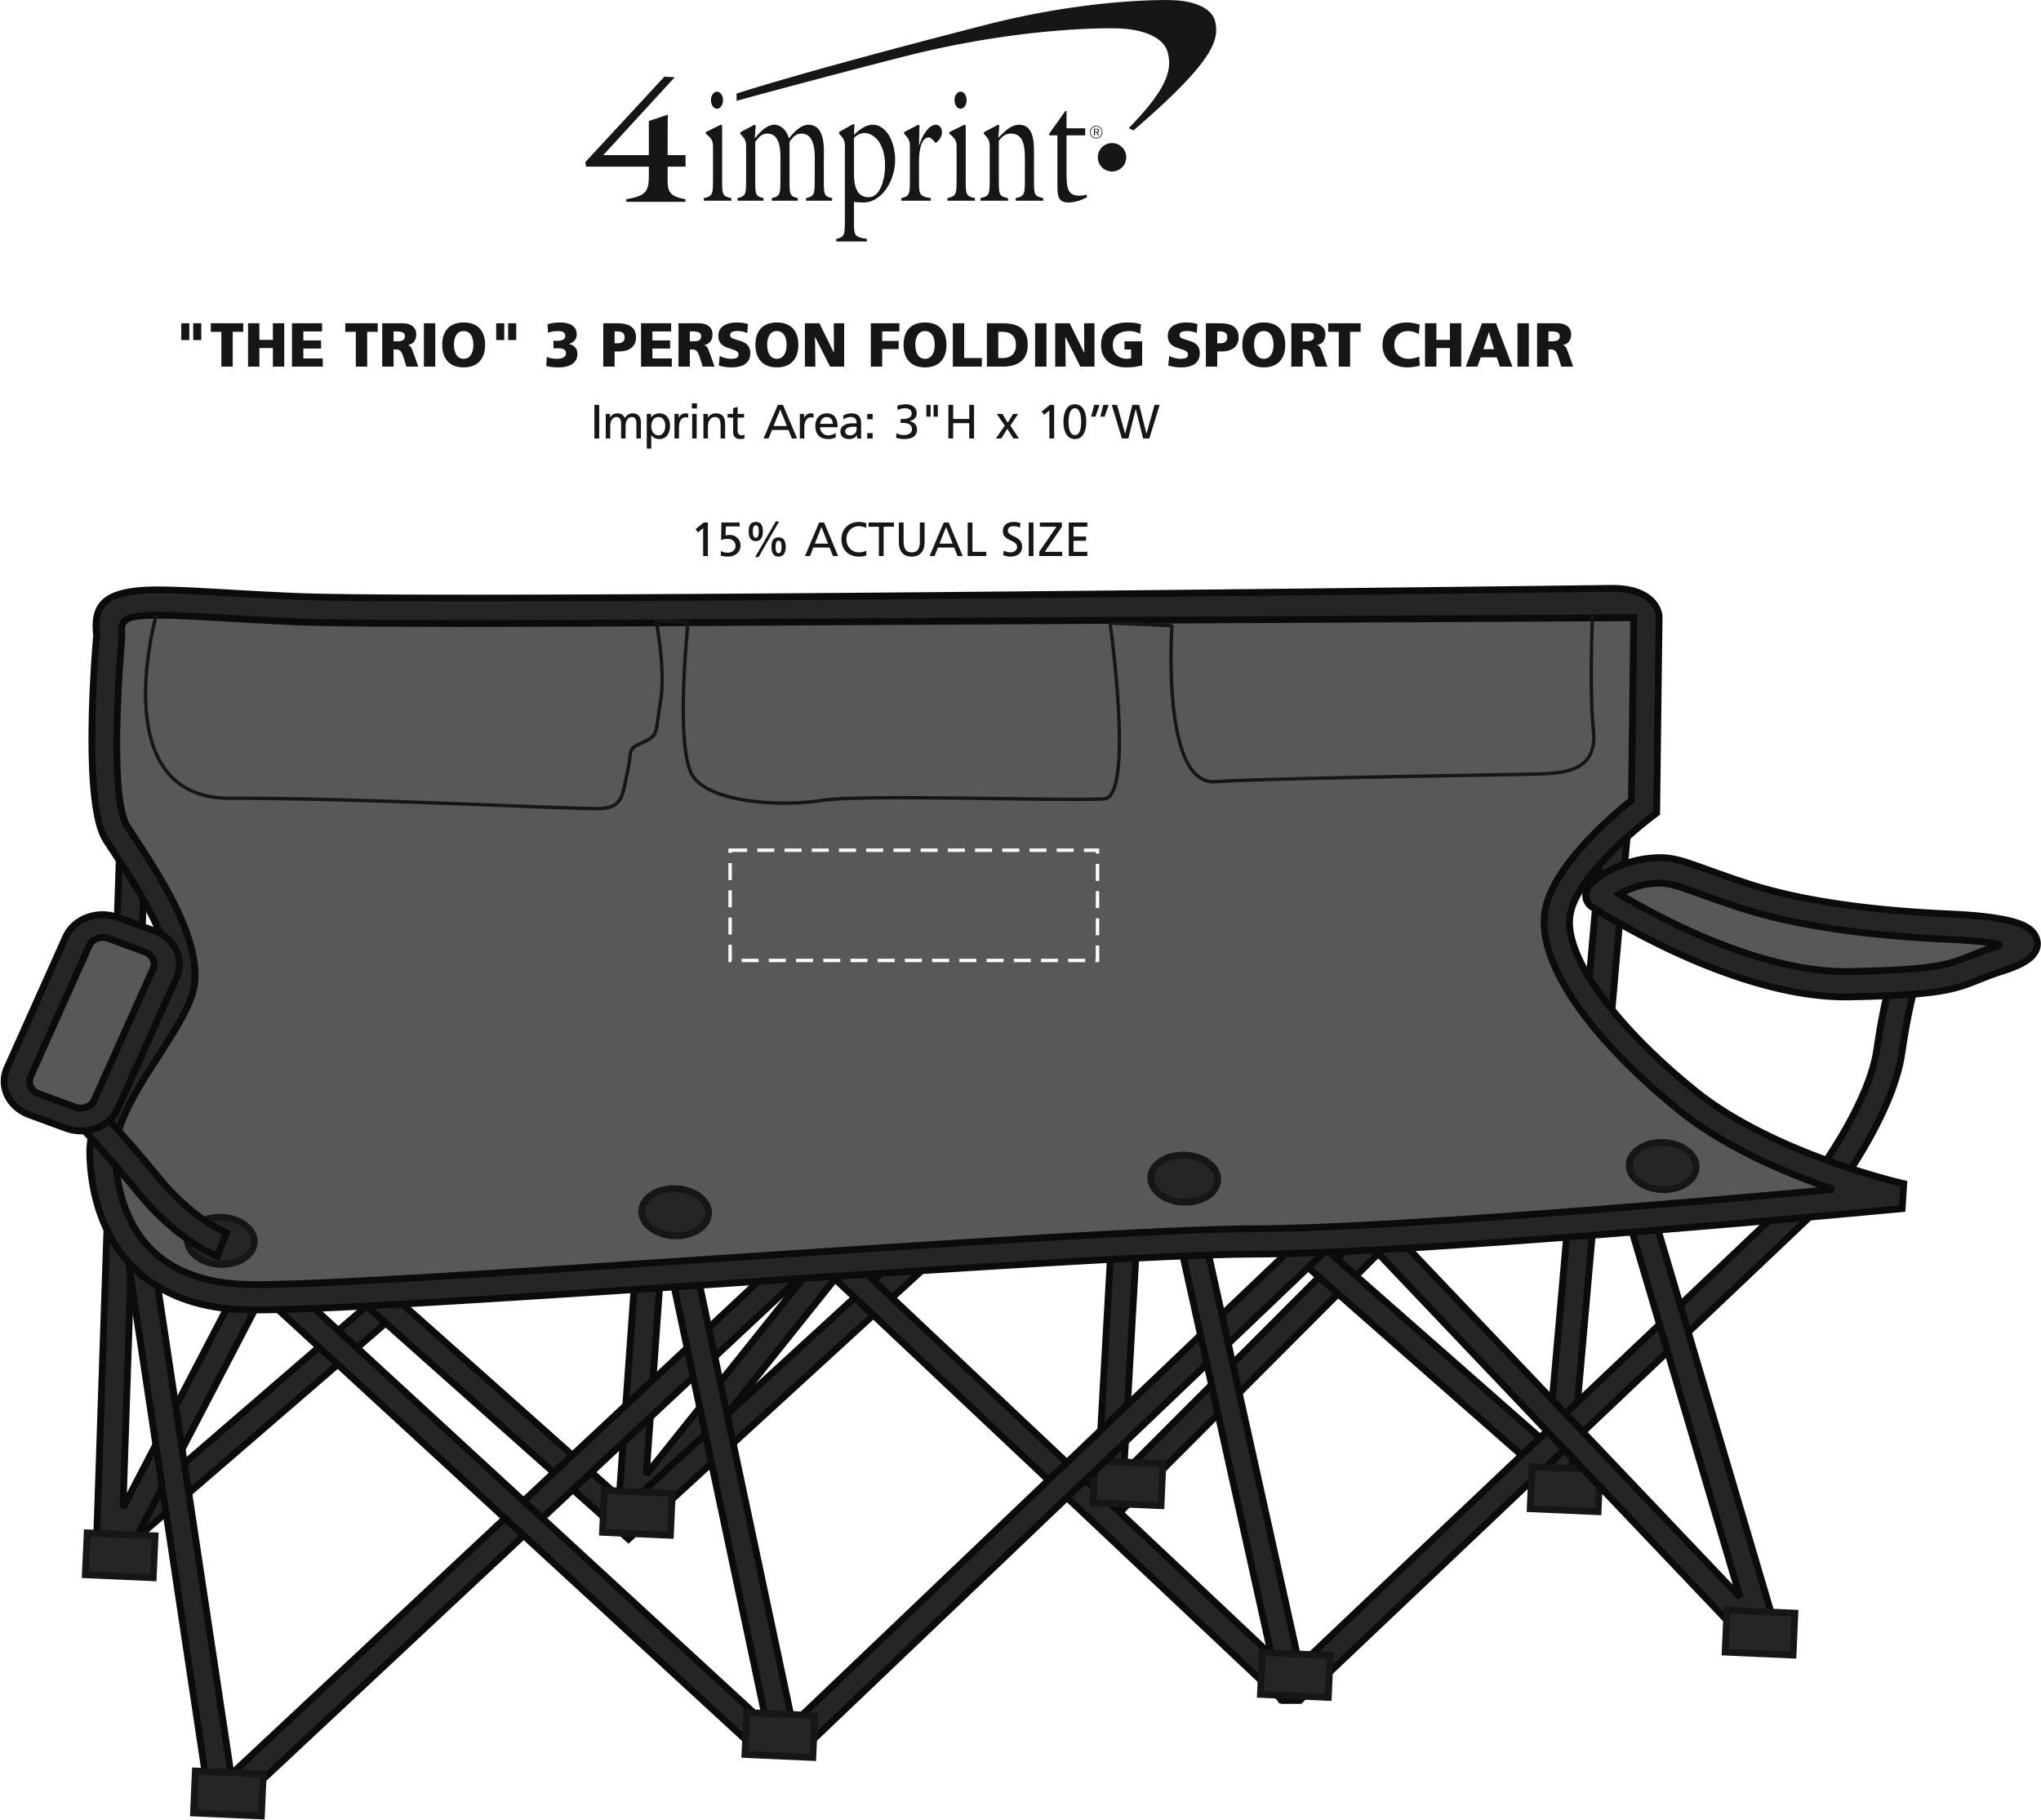 "4imprint ""The Trio"" 3 Person Folding Sport Chair"